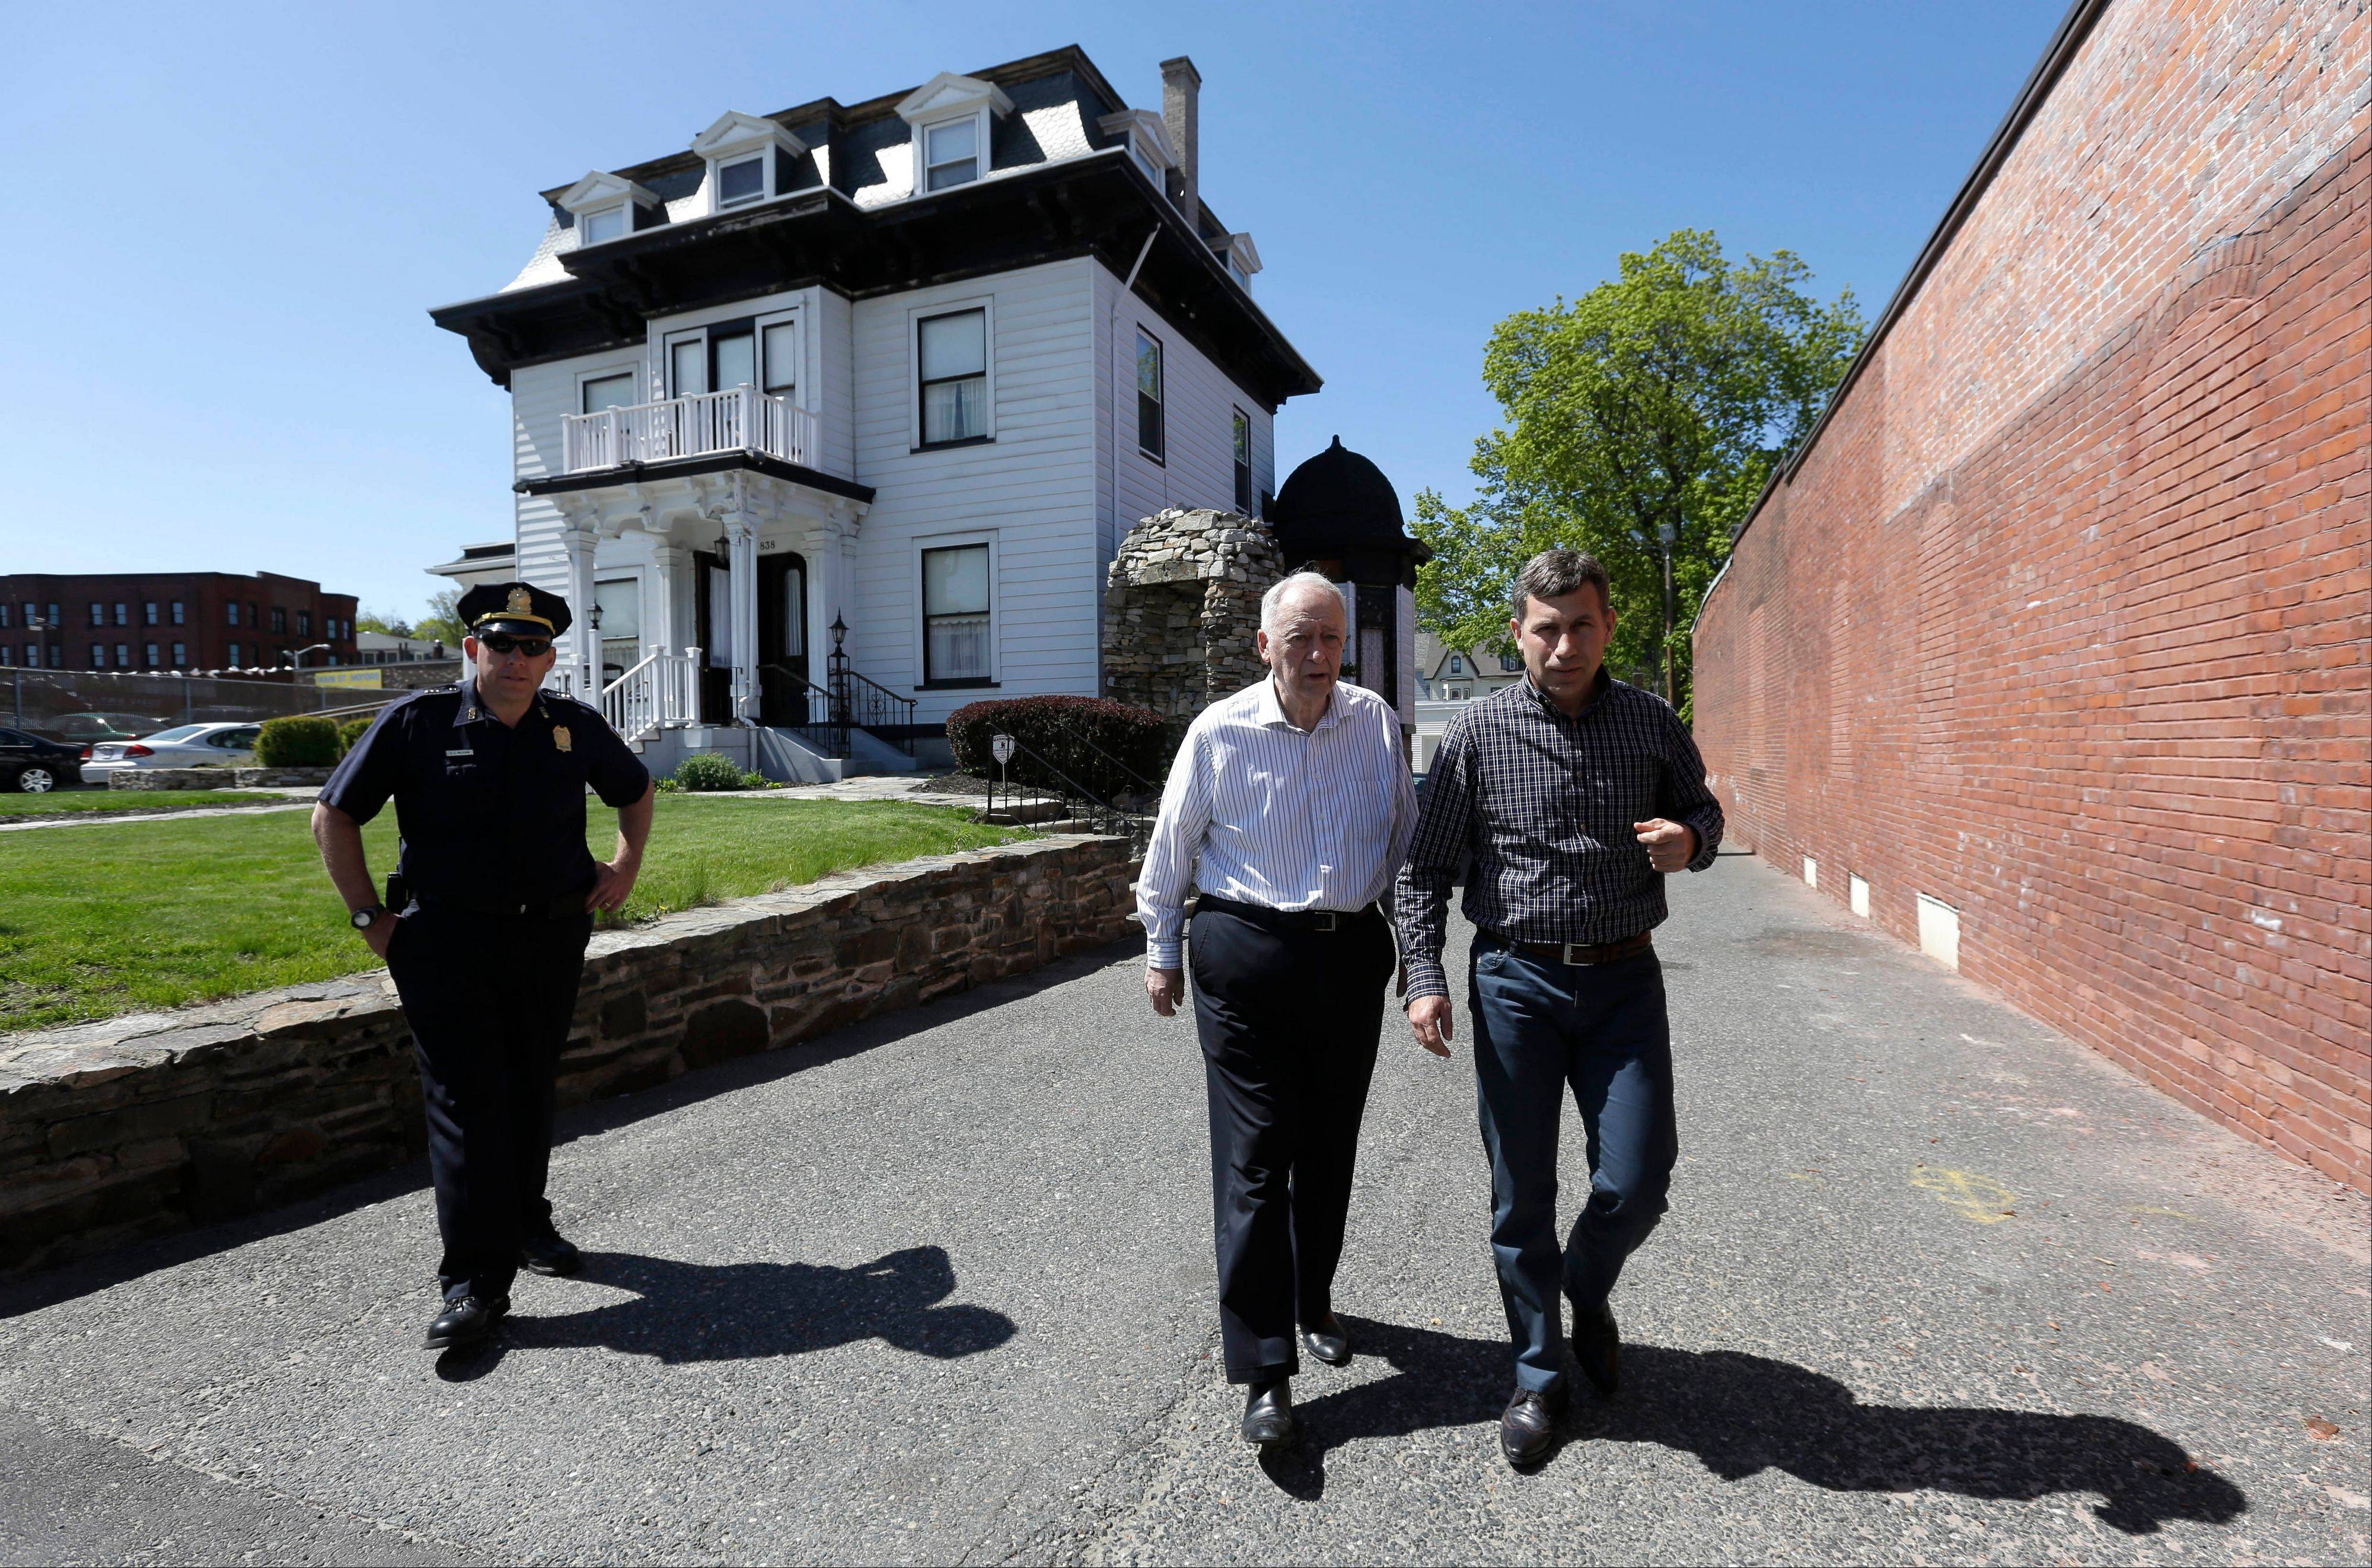 Ruslan Tsarni, right, uncle of the dead Boston Marathon bombing suspect, approaches members of the media, not shown, in front of the Graham, Putnam, and Mahoney Funeral Parlors, in Worcester, Mass., as funeral director and owner Peter Stefan, center, walks with him Sunday. Stefan has pleaded for government officials to use their influence to convince a cemetery to bury the suspect, but so far no state or federal authorities have stepped forward.